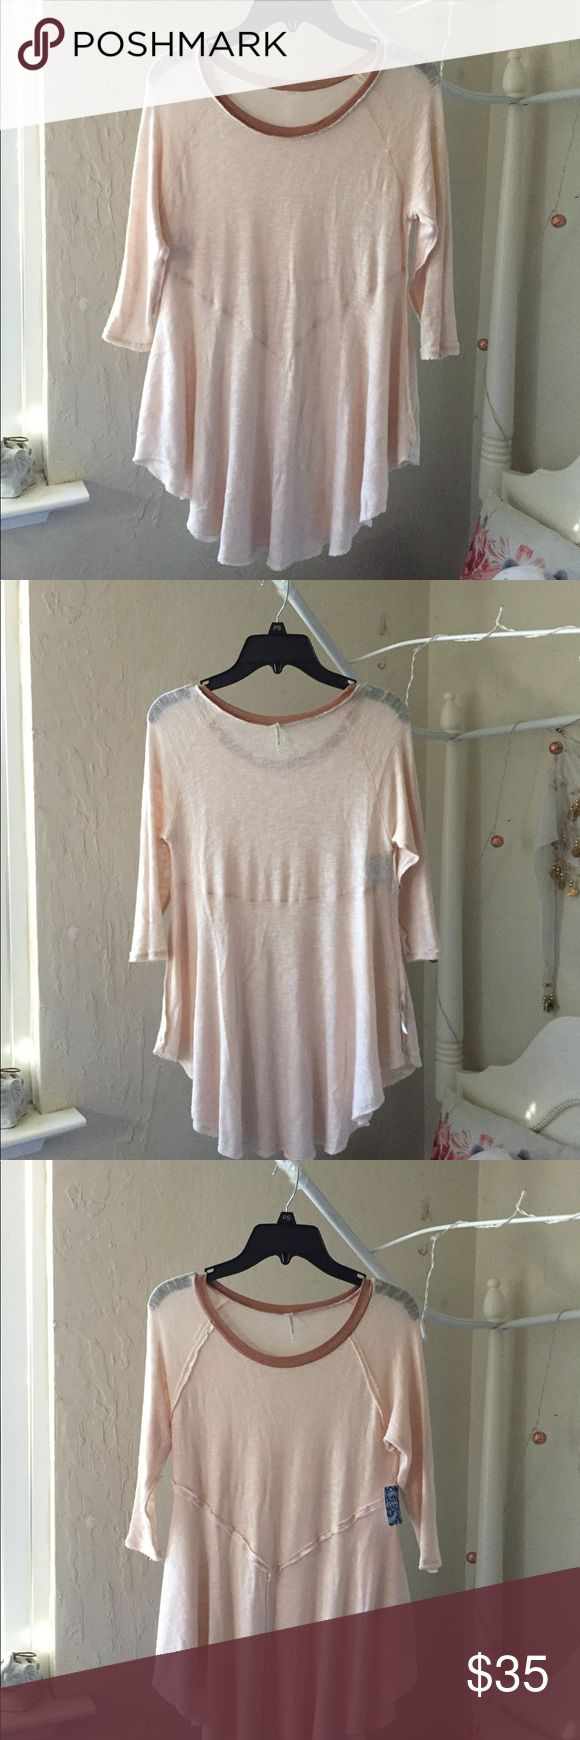 """• nwt free people soft & stretchy shirt • nwt free people distressed shirt. size xs but fits s fine. three quarter sleeves. very soft and very stretchy. retails $40. soft baby pink. color is called tea combo.   cute collar to add definition. style is weekends layering top. VERY FLATTERING! it looks great on everybody.   note: i showed the first two pics """"inside out"""", which i think is cuter. the right side is an open unfinished hem, but i didn't like it as much. it's definitely reversible if…"""